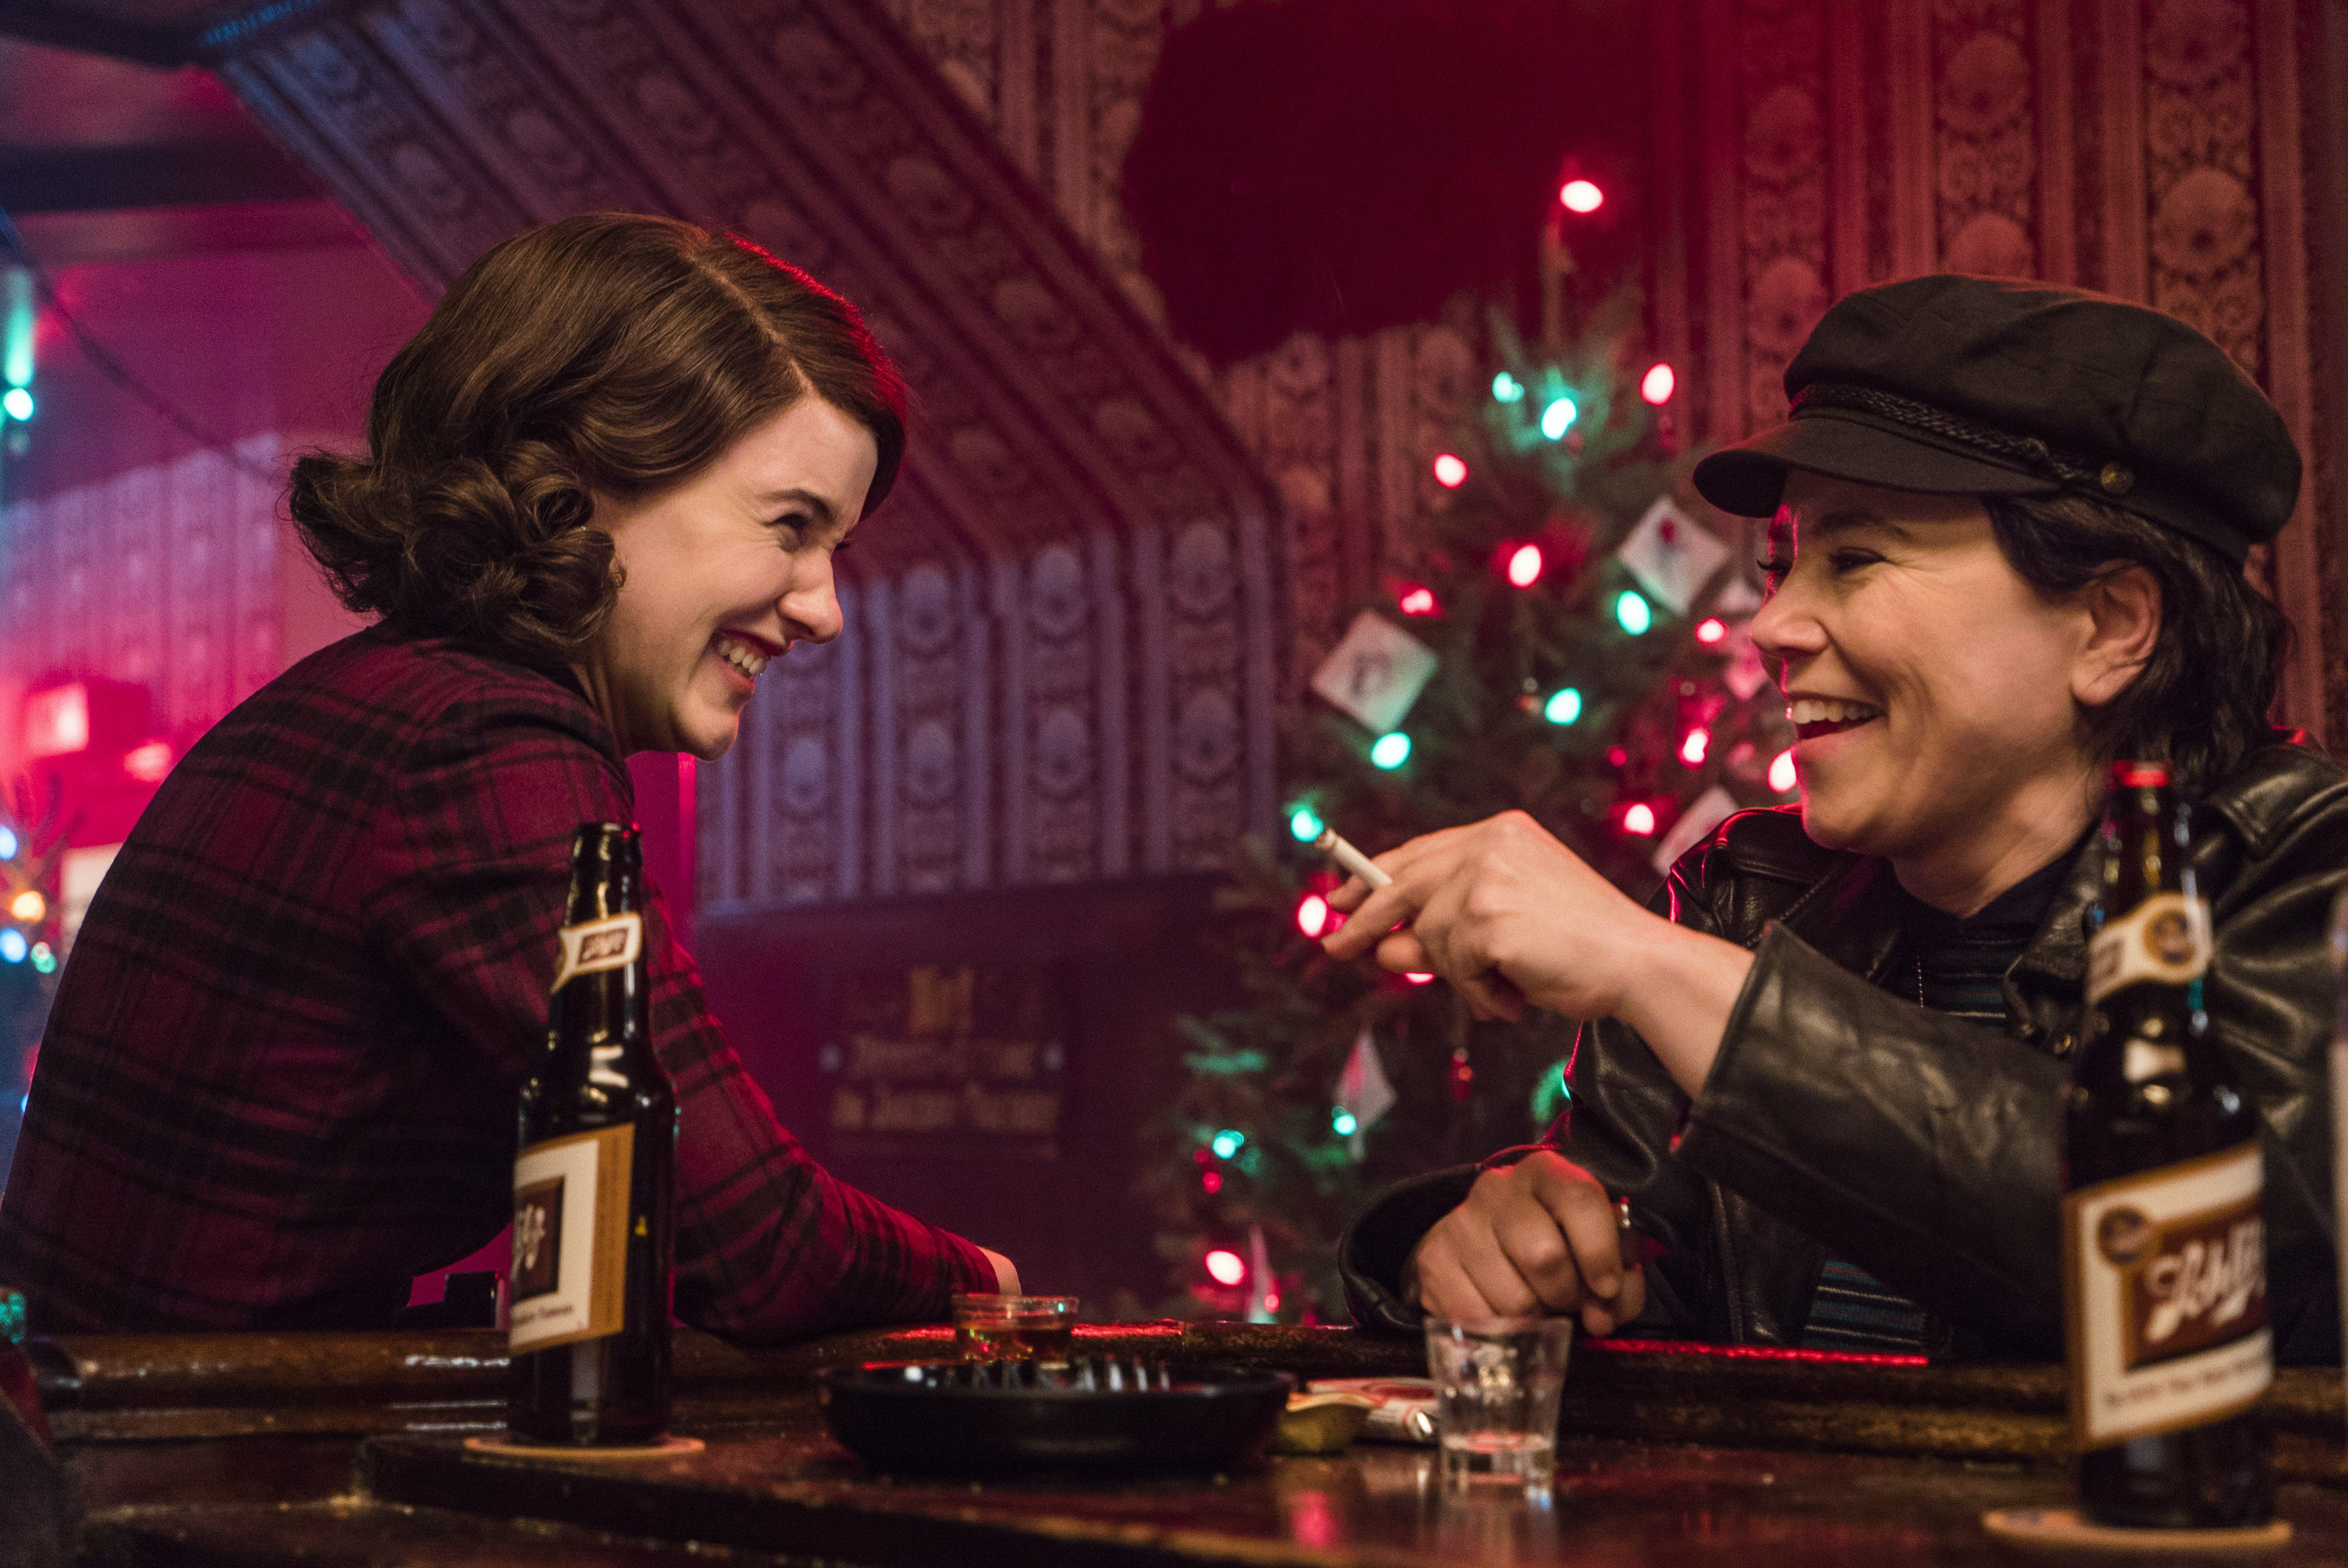 Risultati immagini per the marvelous mrs maisel season 2